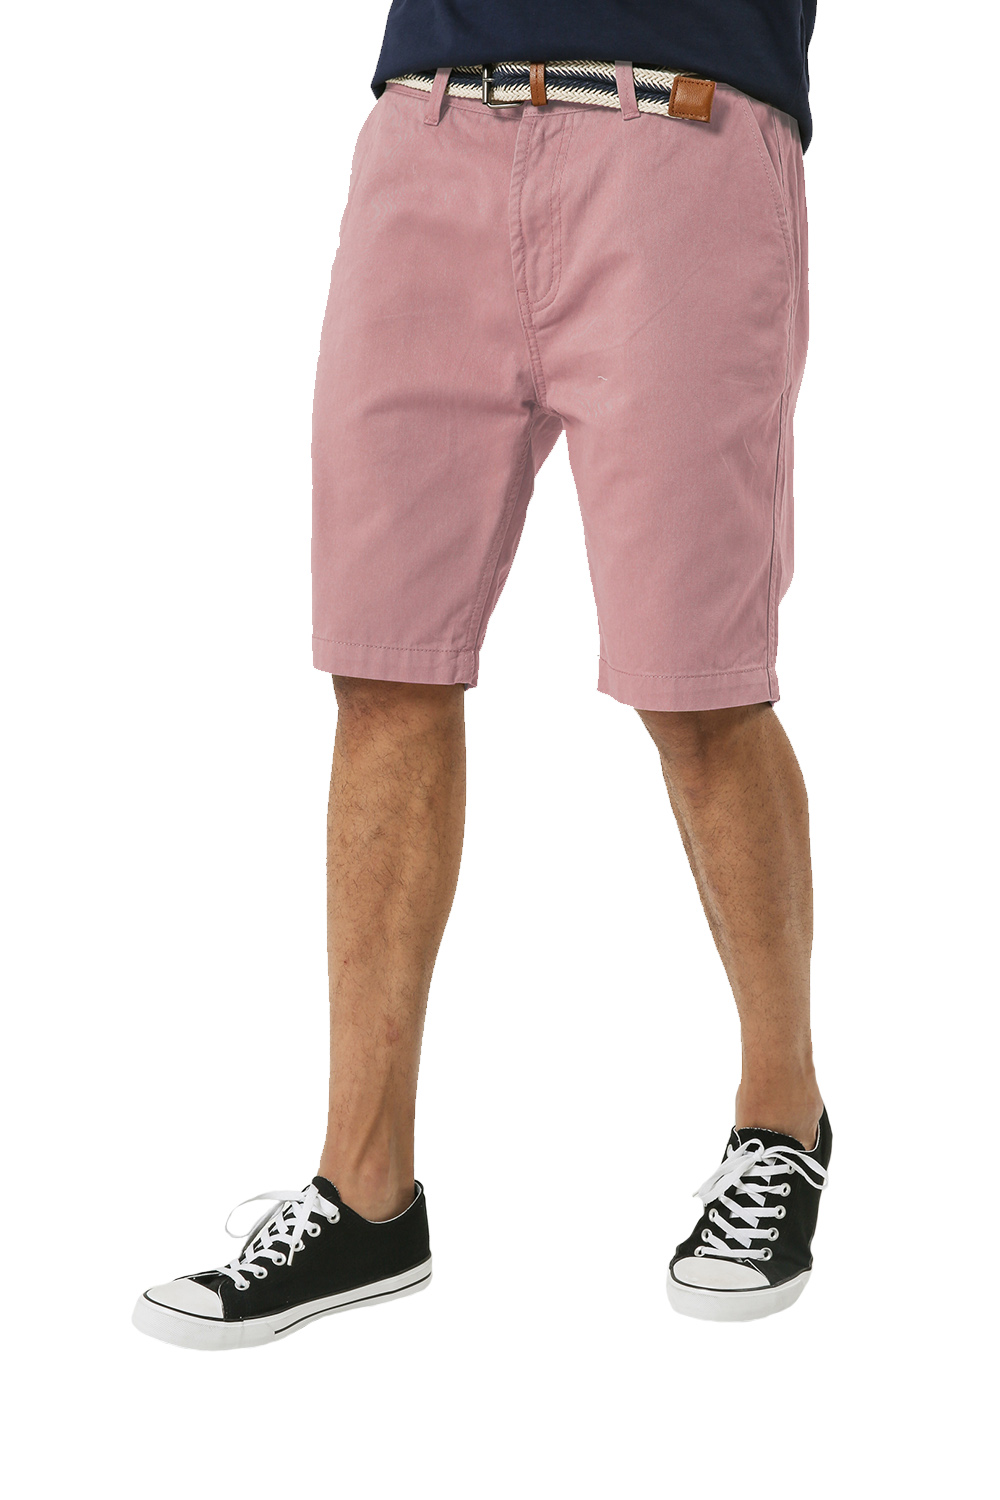 Threadbare-Mens-Slim-Fit-Belted-Chino-Shorts-Summer-Casual-Cotton-Smart-Bottoms thumbnail 38